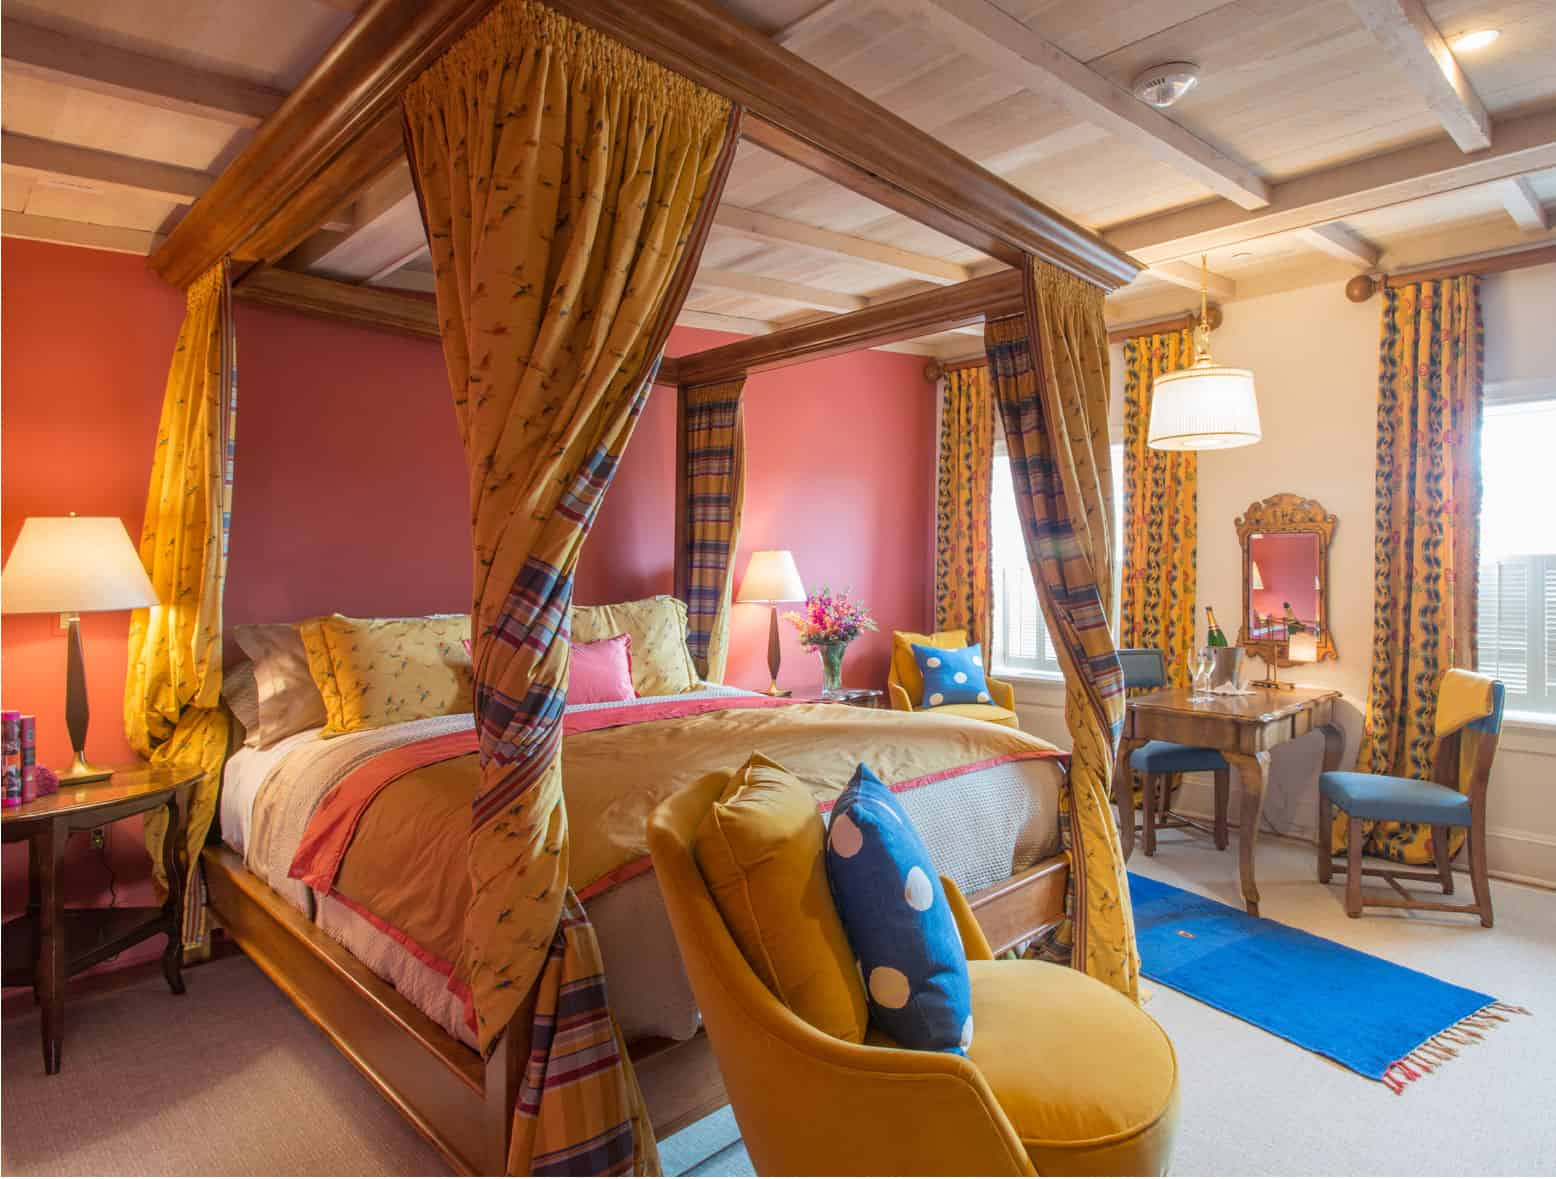 Front perspective view of the four poster bed inside the Ivy Hotel Baltimore. The bedroom goes for a storybook theme, with golds and a pattern for the canopy drapes. A contrasting blue pillow rests on the chair in front